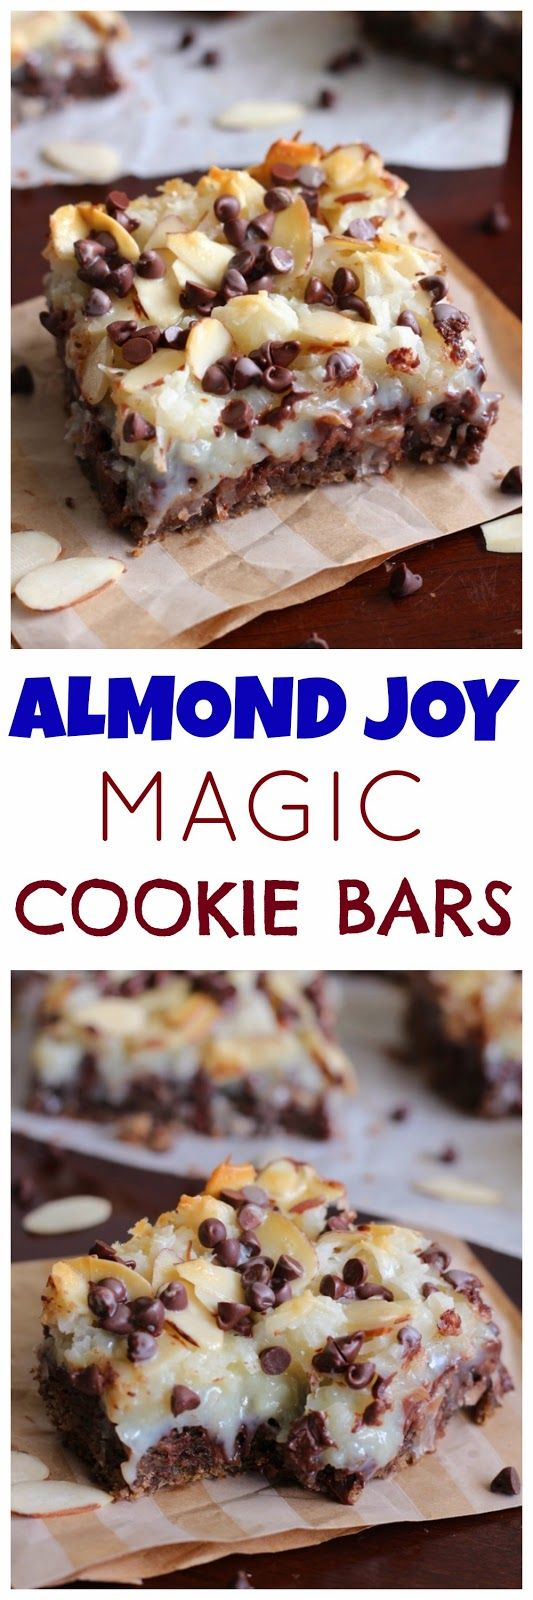 Almond Joy Magic Cookie Bars